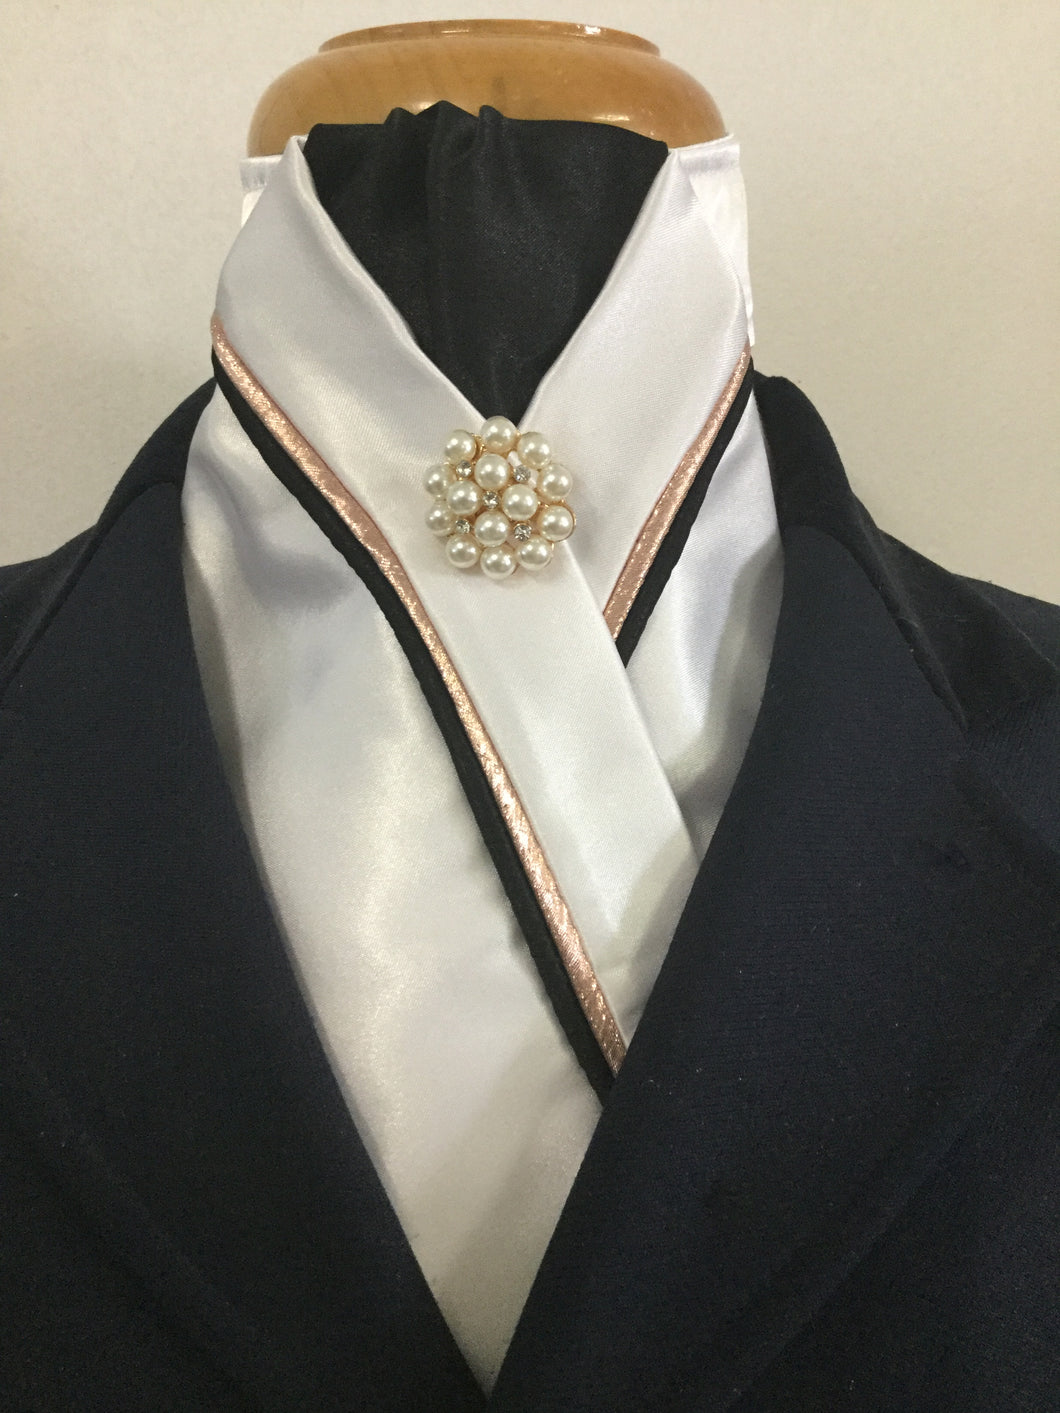 HHD Custom White Satin Rose Gold & Black or Navy Pearl Rhinestone Pin